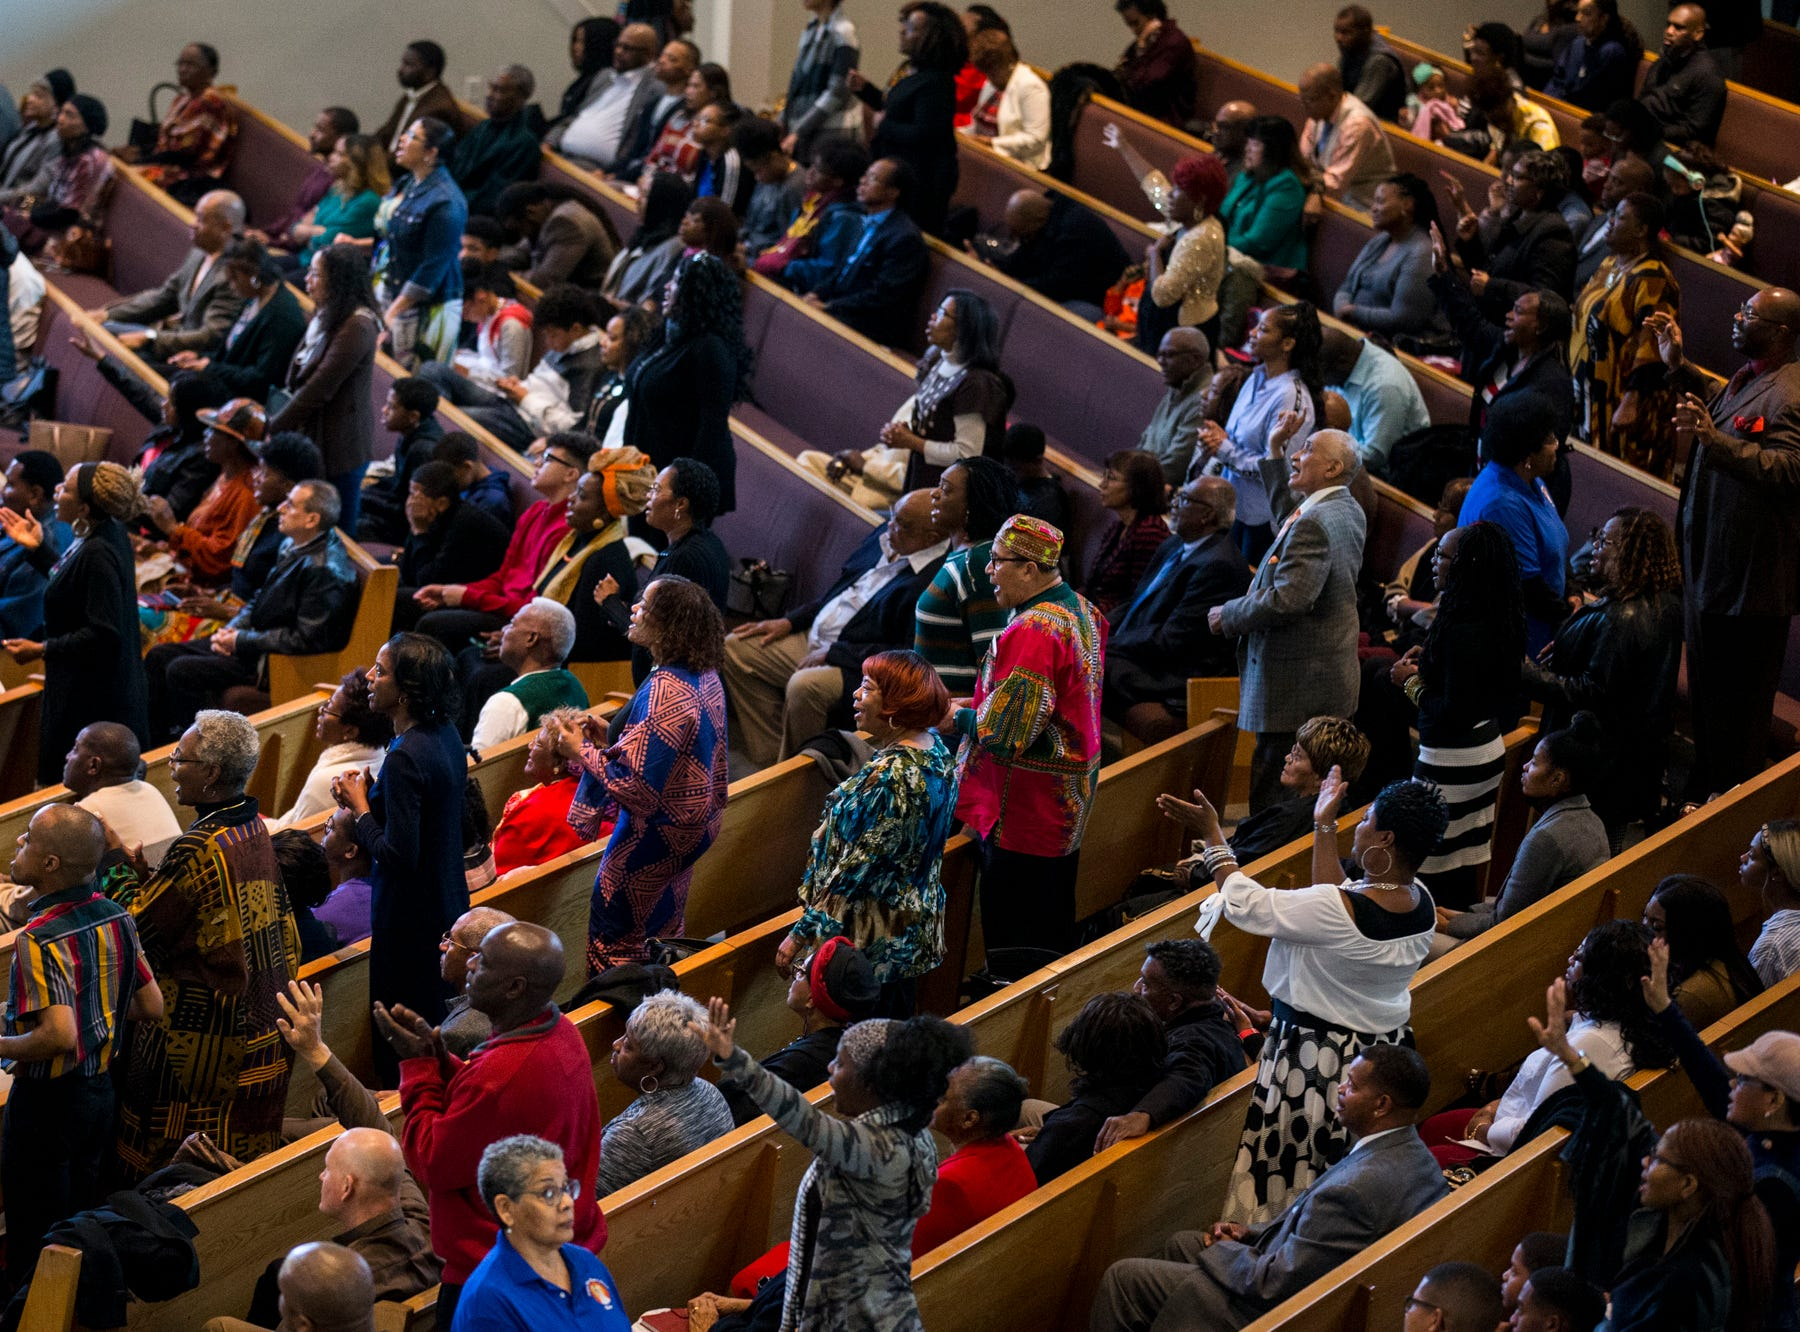 Congregants sing during the 7:30 a.m. service on Feb. 24, 2019, at Pilgrim Rest Baptist Church in Phoenix. Pastor Terry Mackey was appointed to replace the late Bishop Alexis Thomas.